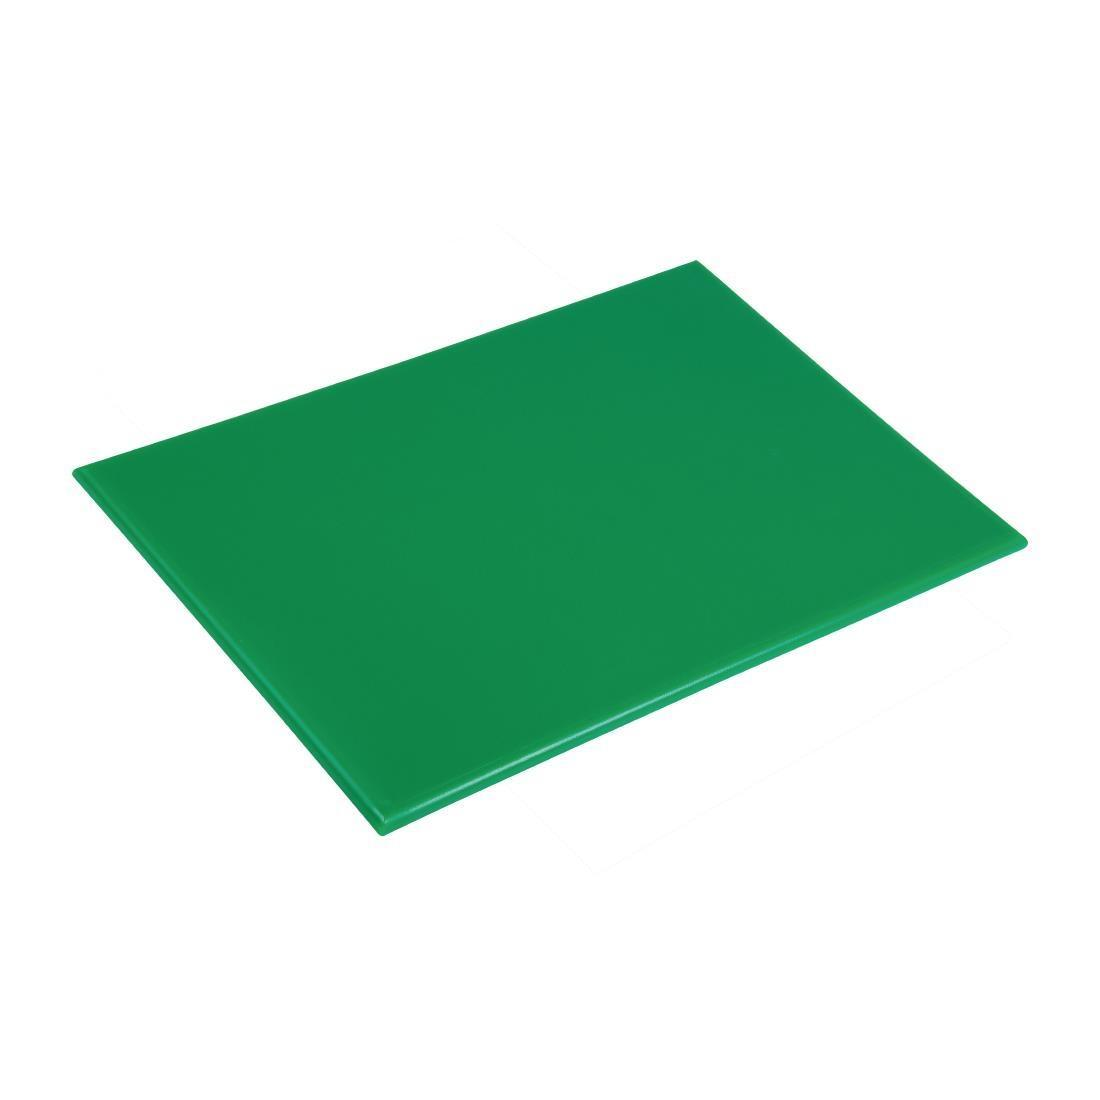 Hygiplas Anti Microbial High Density Green Chopping Board